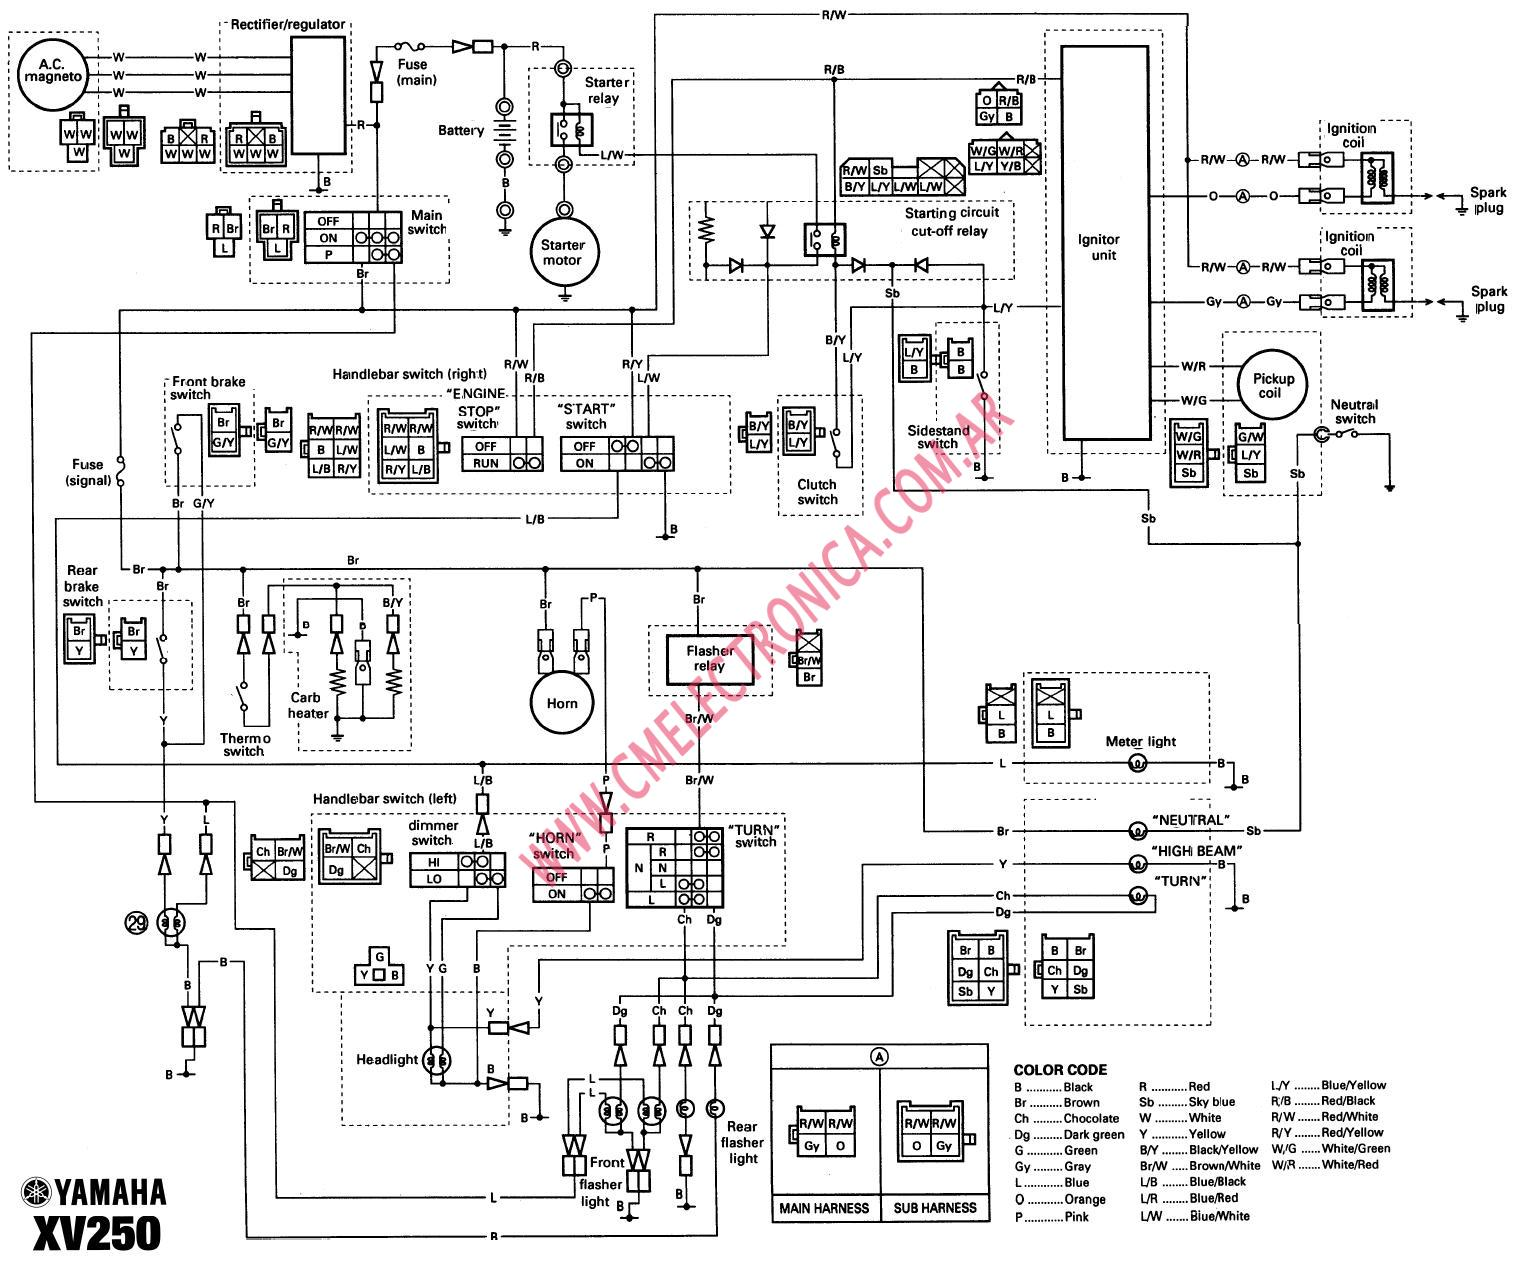 Yamaha 703 Remote Control Wiring Diagram likewise Showthread additionally Jimmie Vaughan Strat Wiring Diagram in addition Mercruiser Wiring Harness Diagram likewise Mikuni Hsr424548 Carburetor Schematic Diagram. on mercury outboard wiring color code